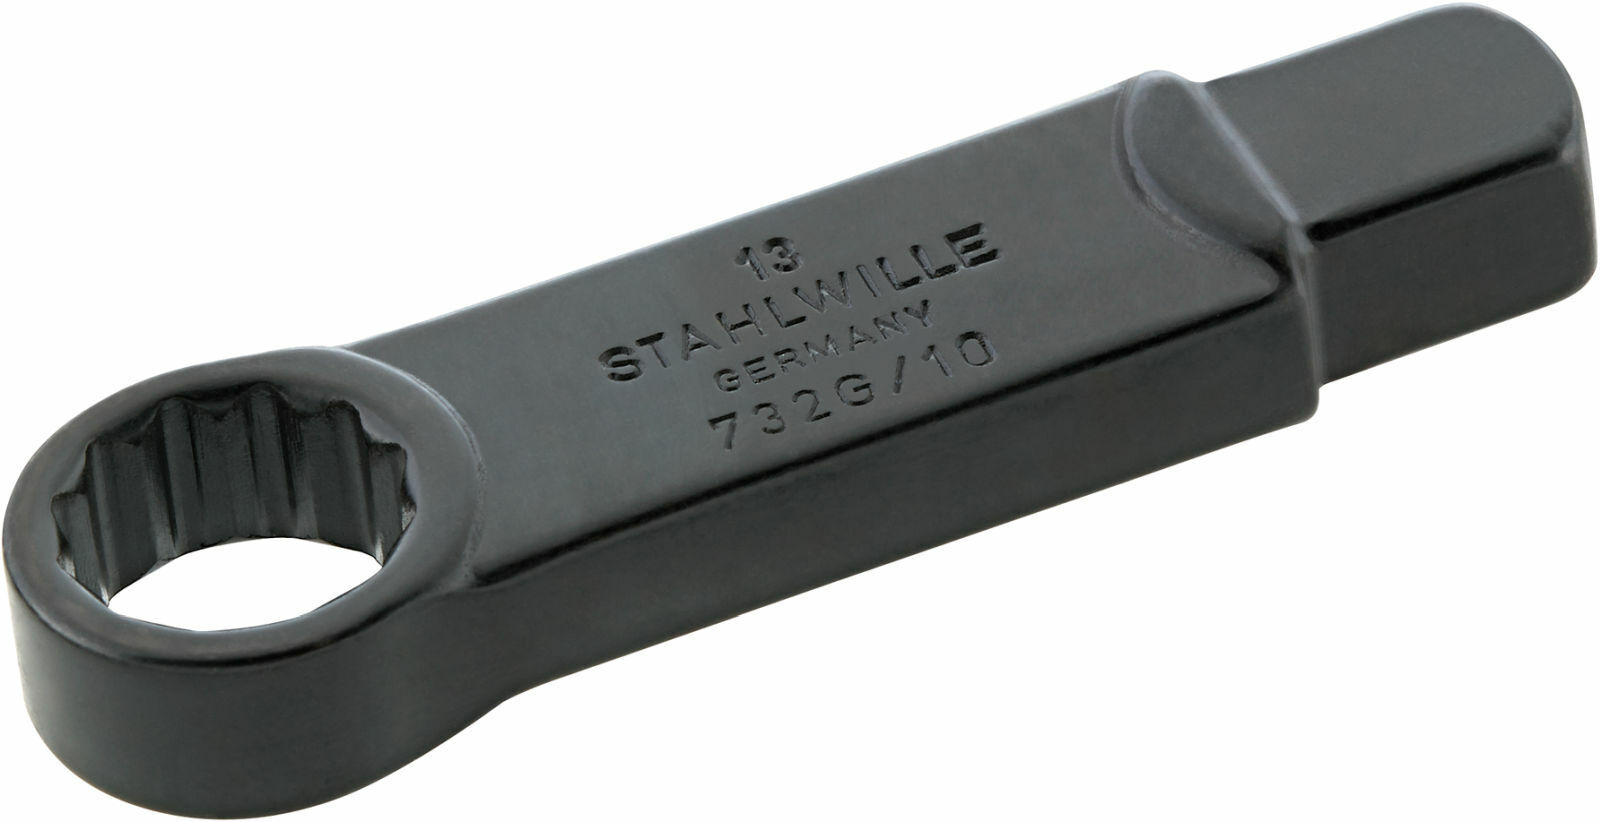 Stahlwille RING INSERT TOOLS, 9X12 MM 58621236